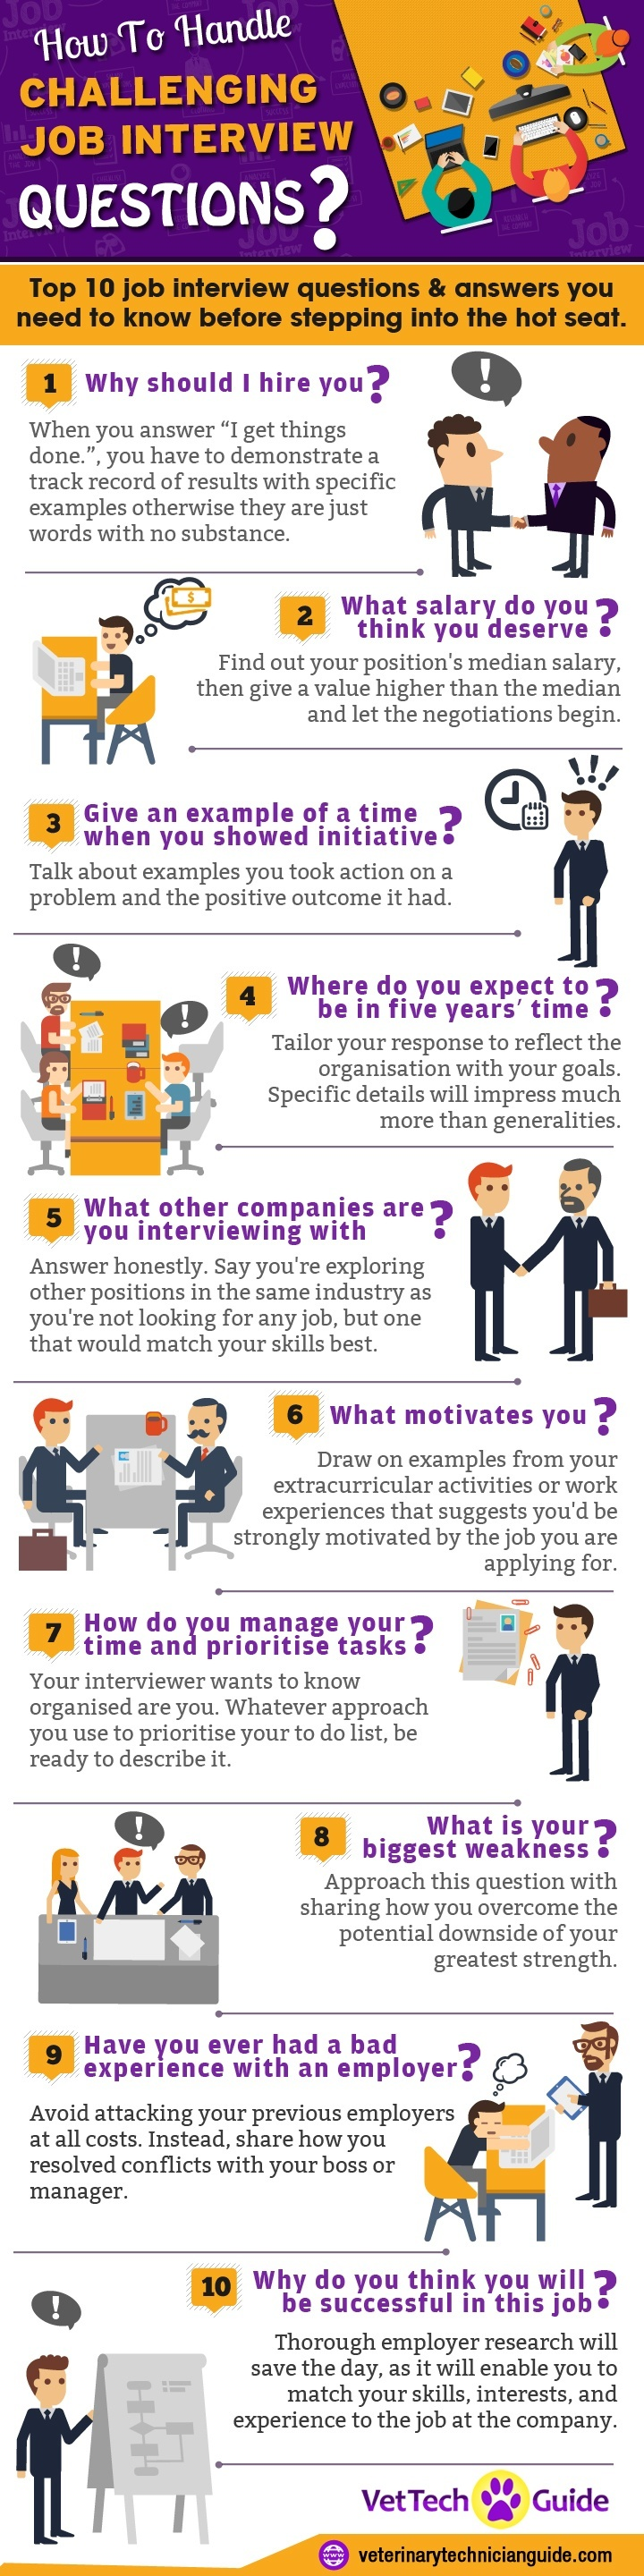 how to handle challenging job interview questions skip prichard how to handle challenging job interview questions live